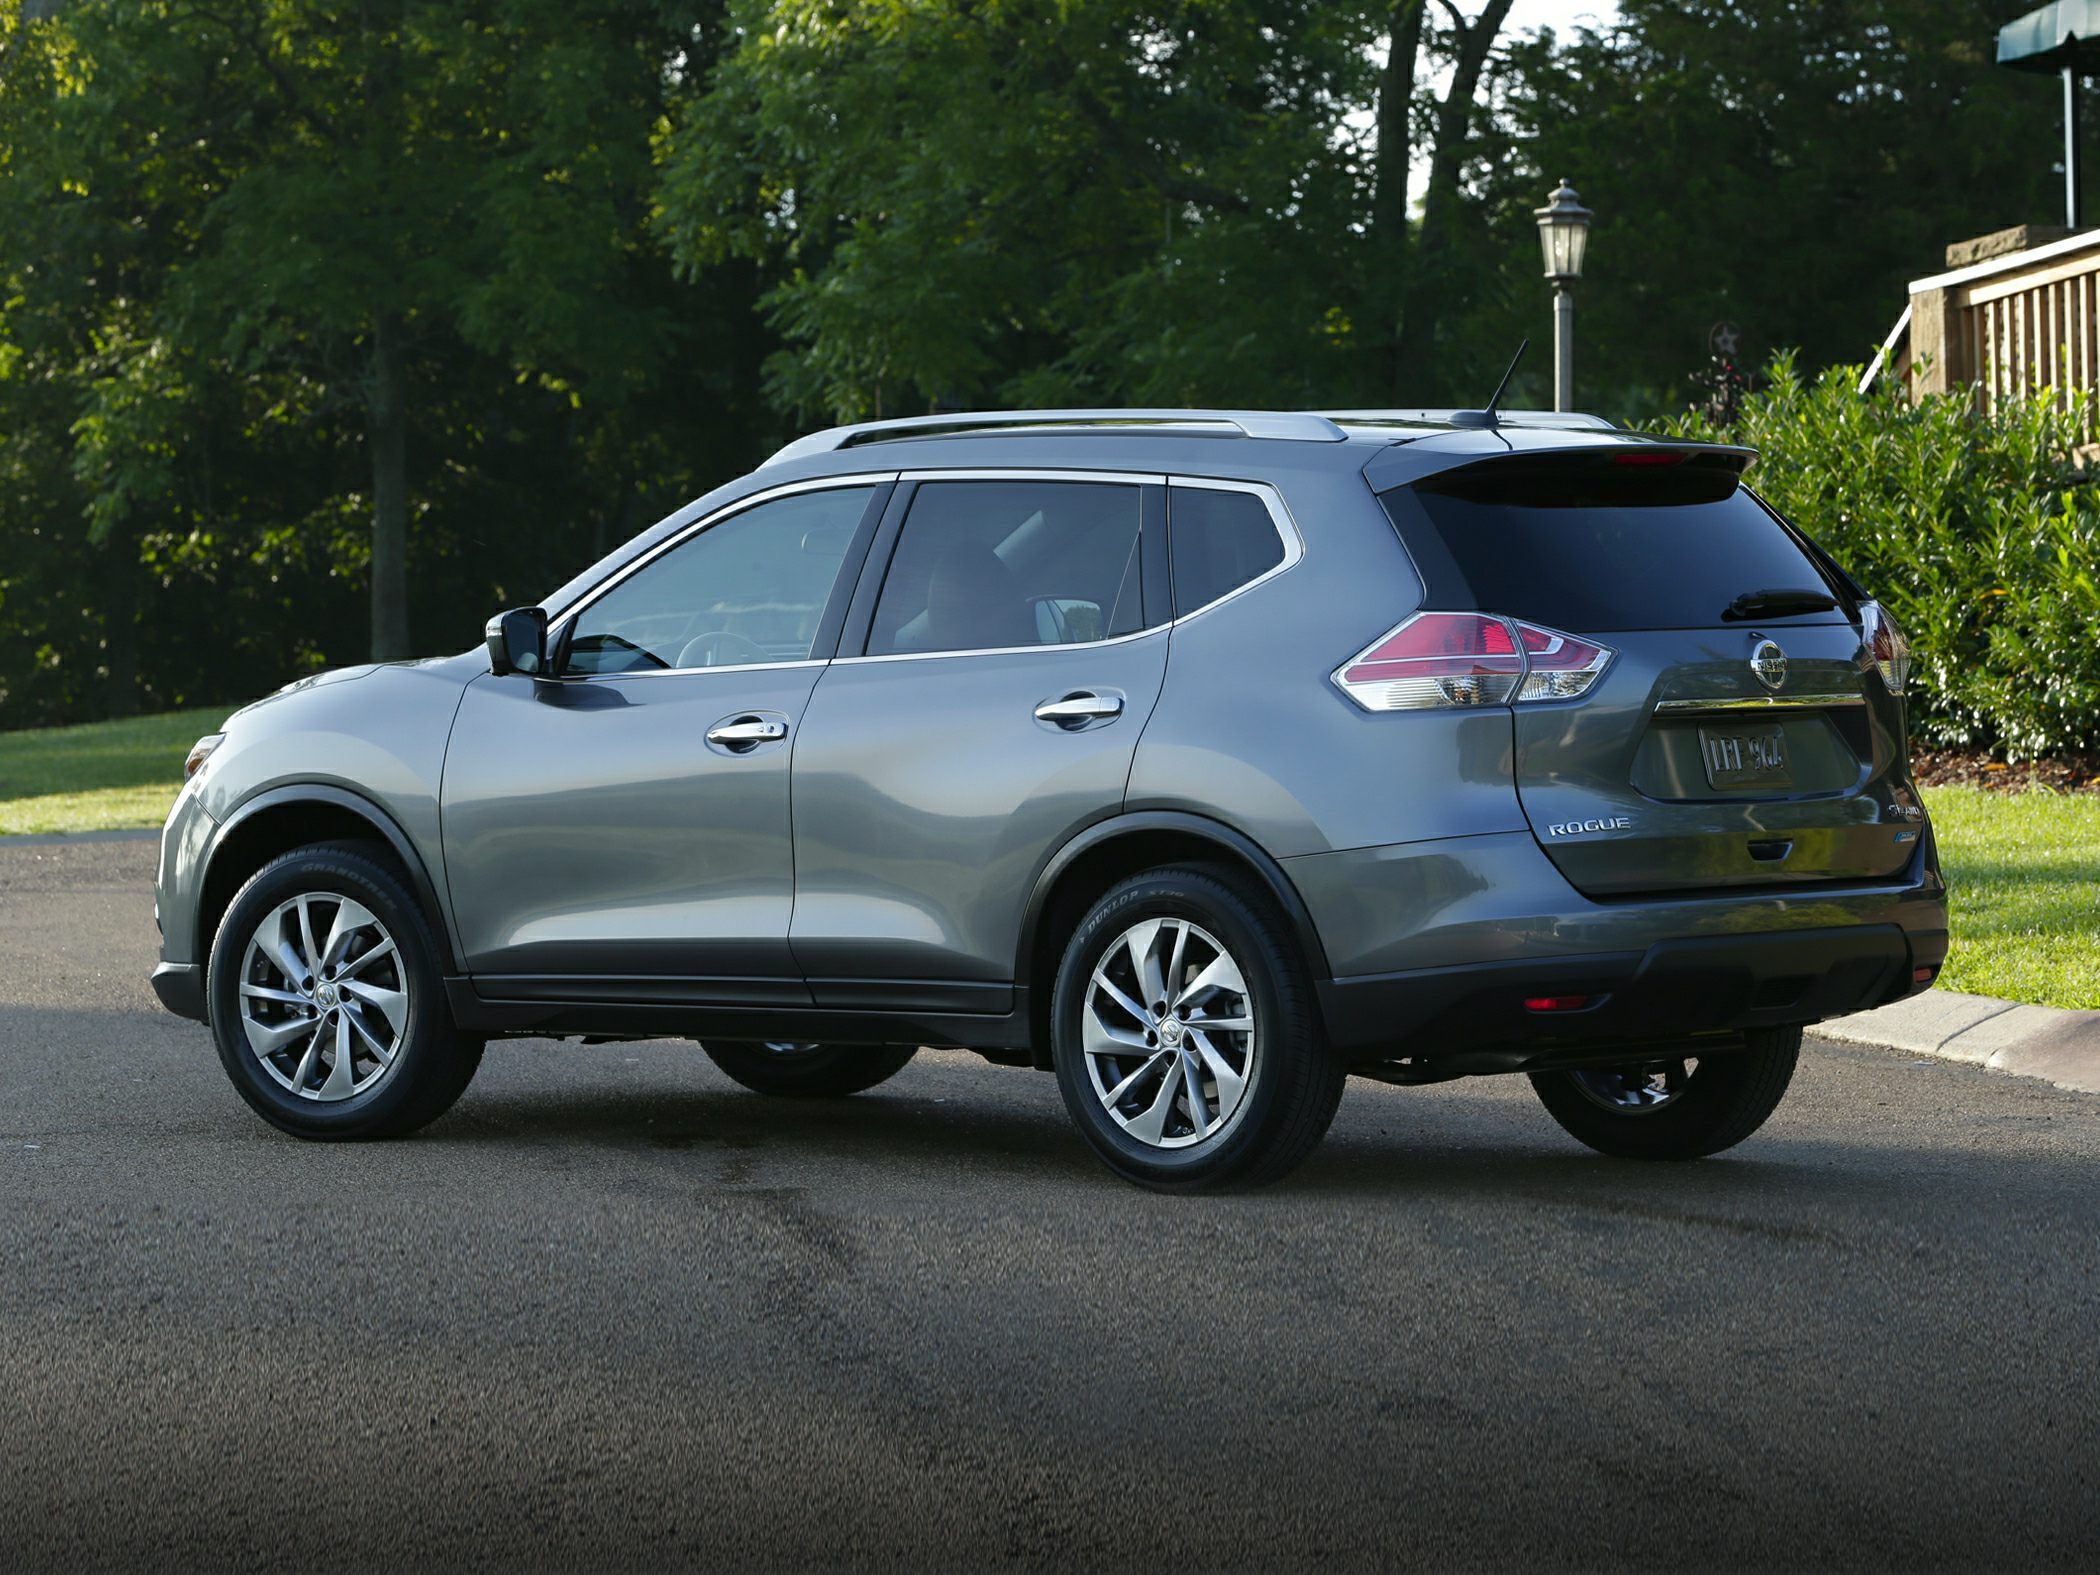 rogue on new price safety pricing payments dealer nissan and estimated invoice details features prices cars specs